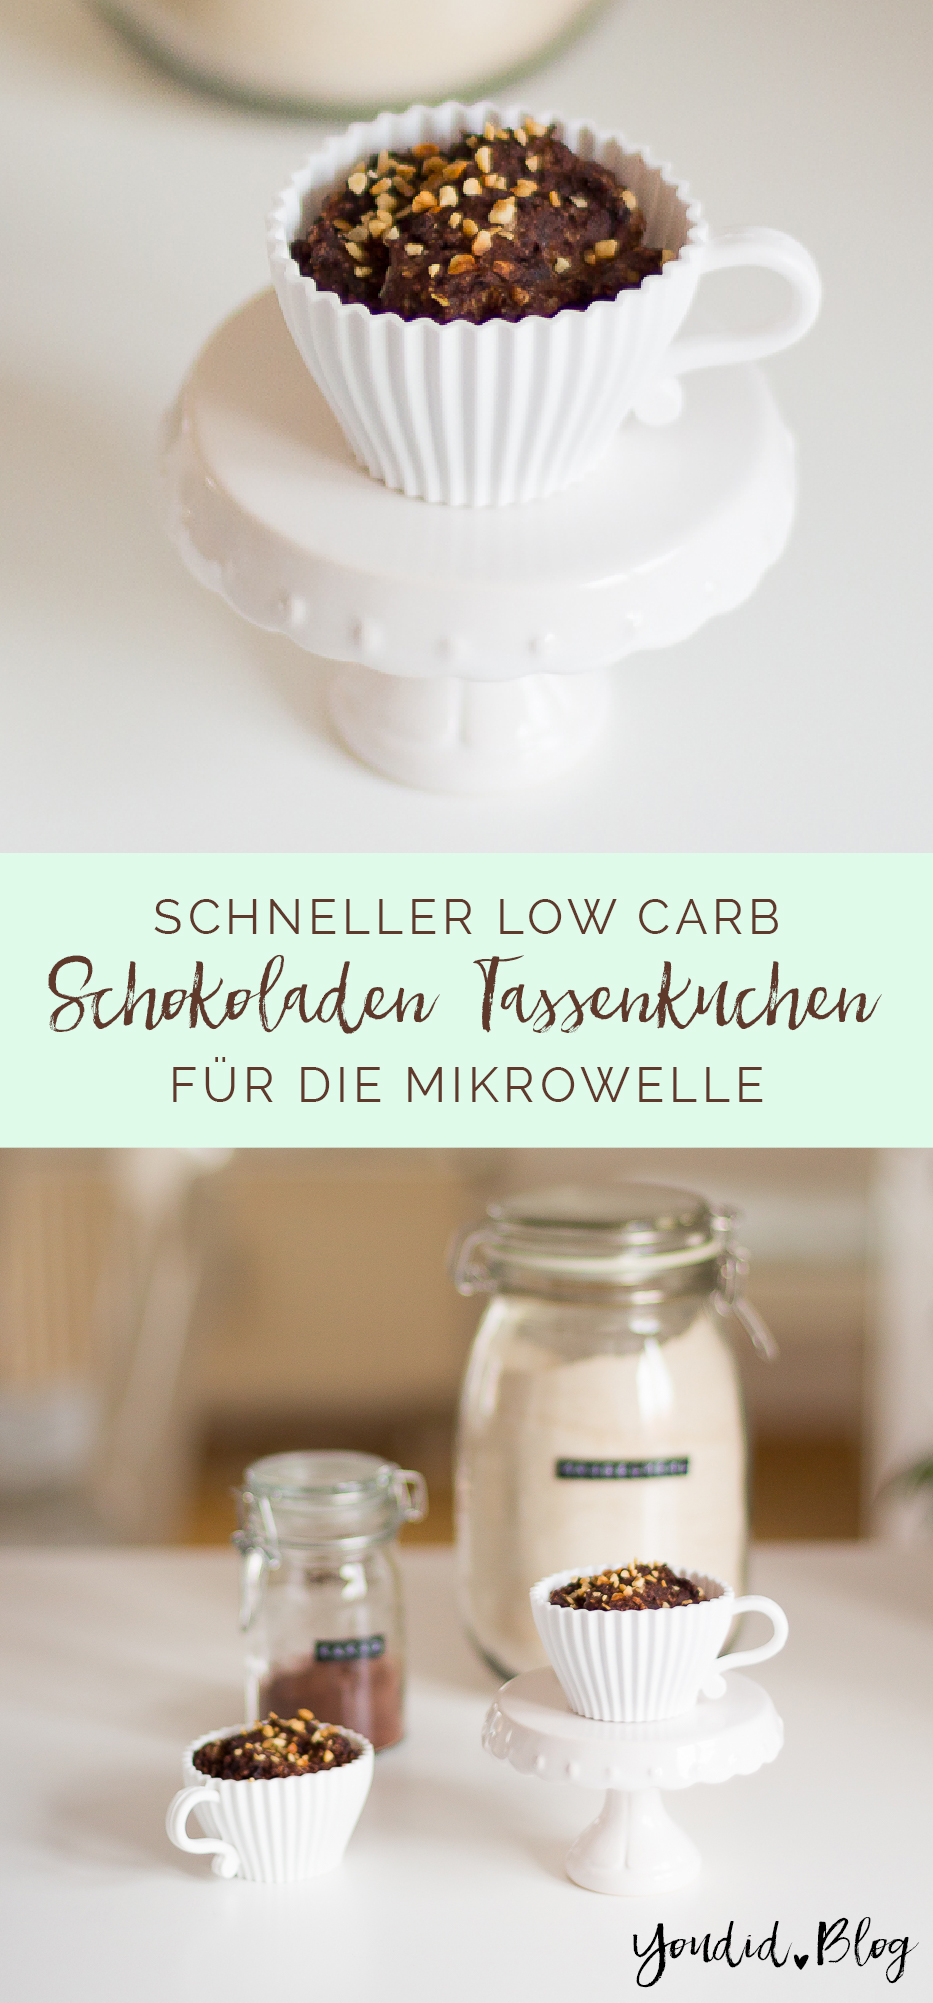 1 Minute Low Carb Schokoladen Tassenkuchen Mug Cake | https://youdid.blog